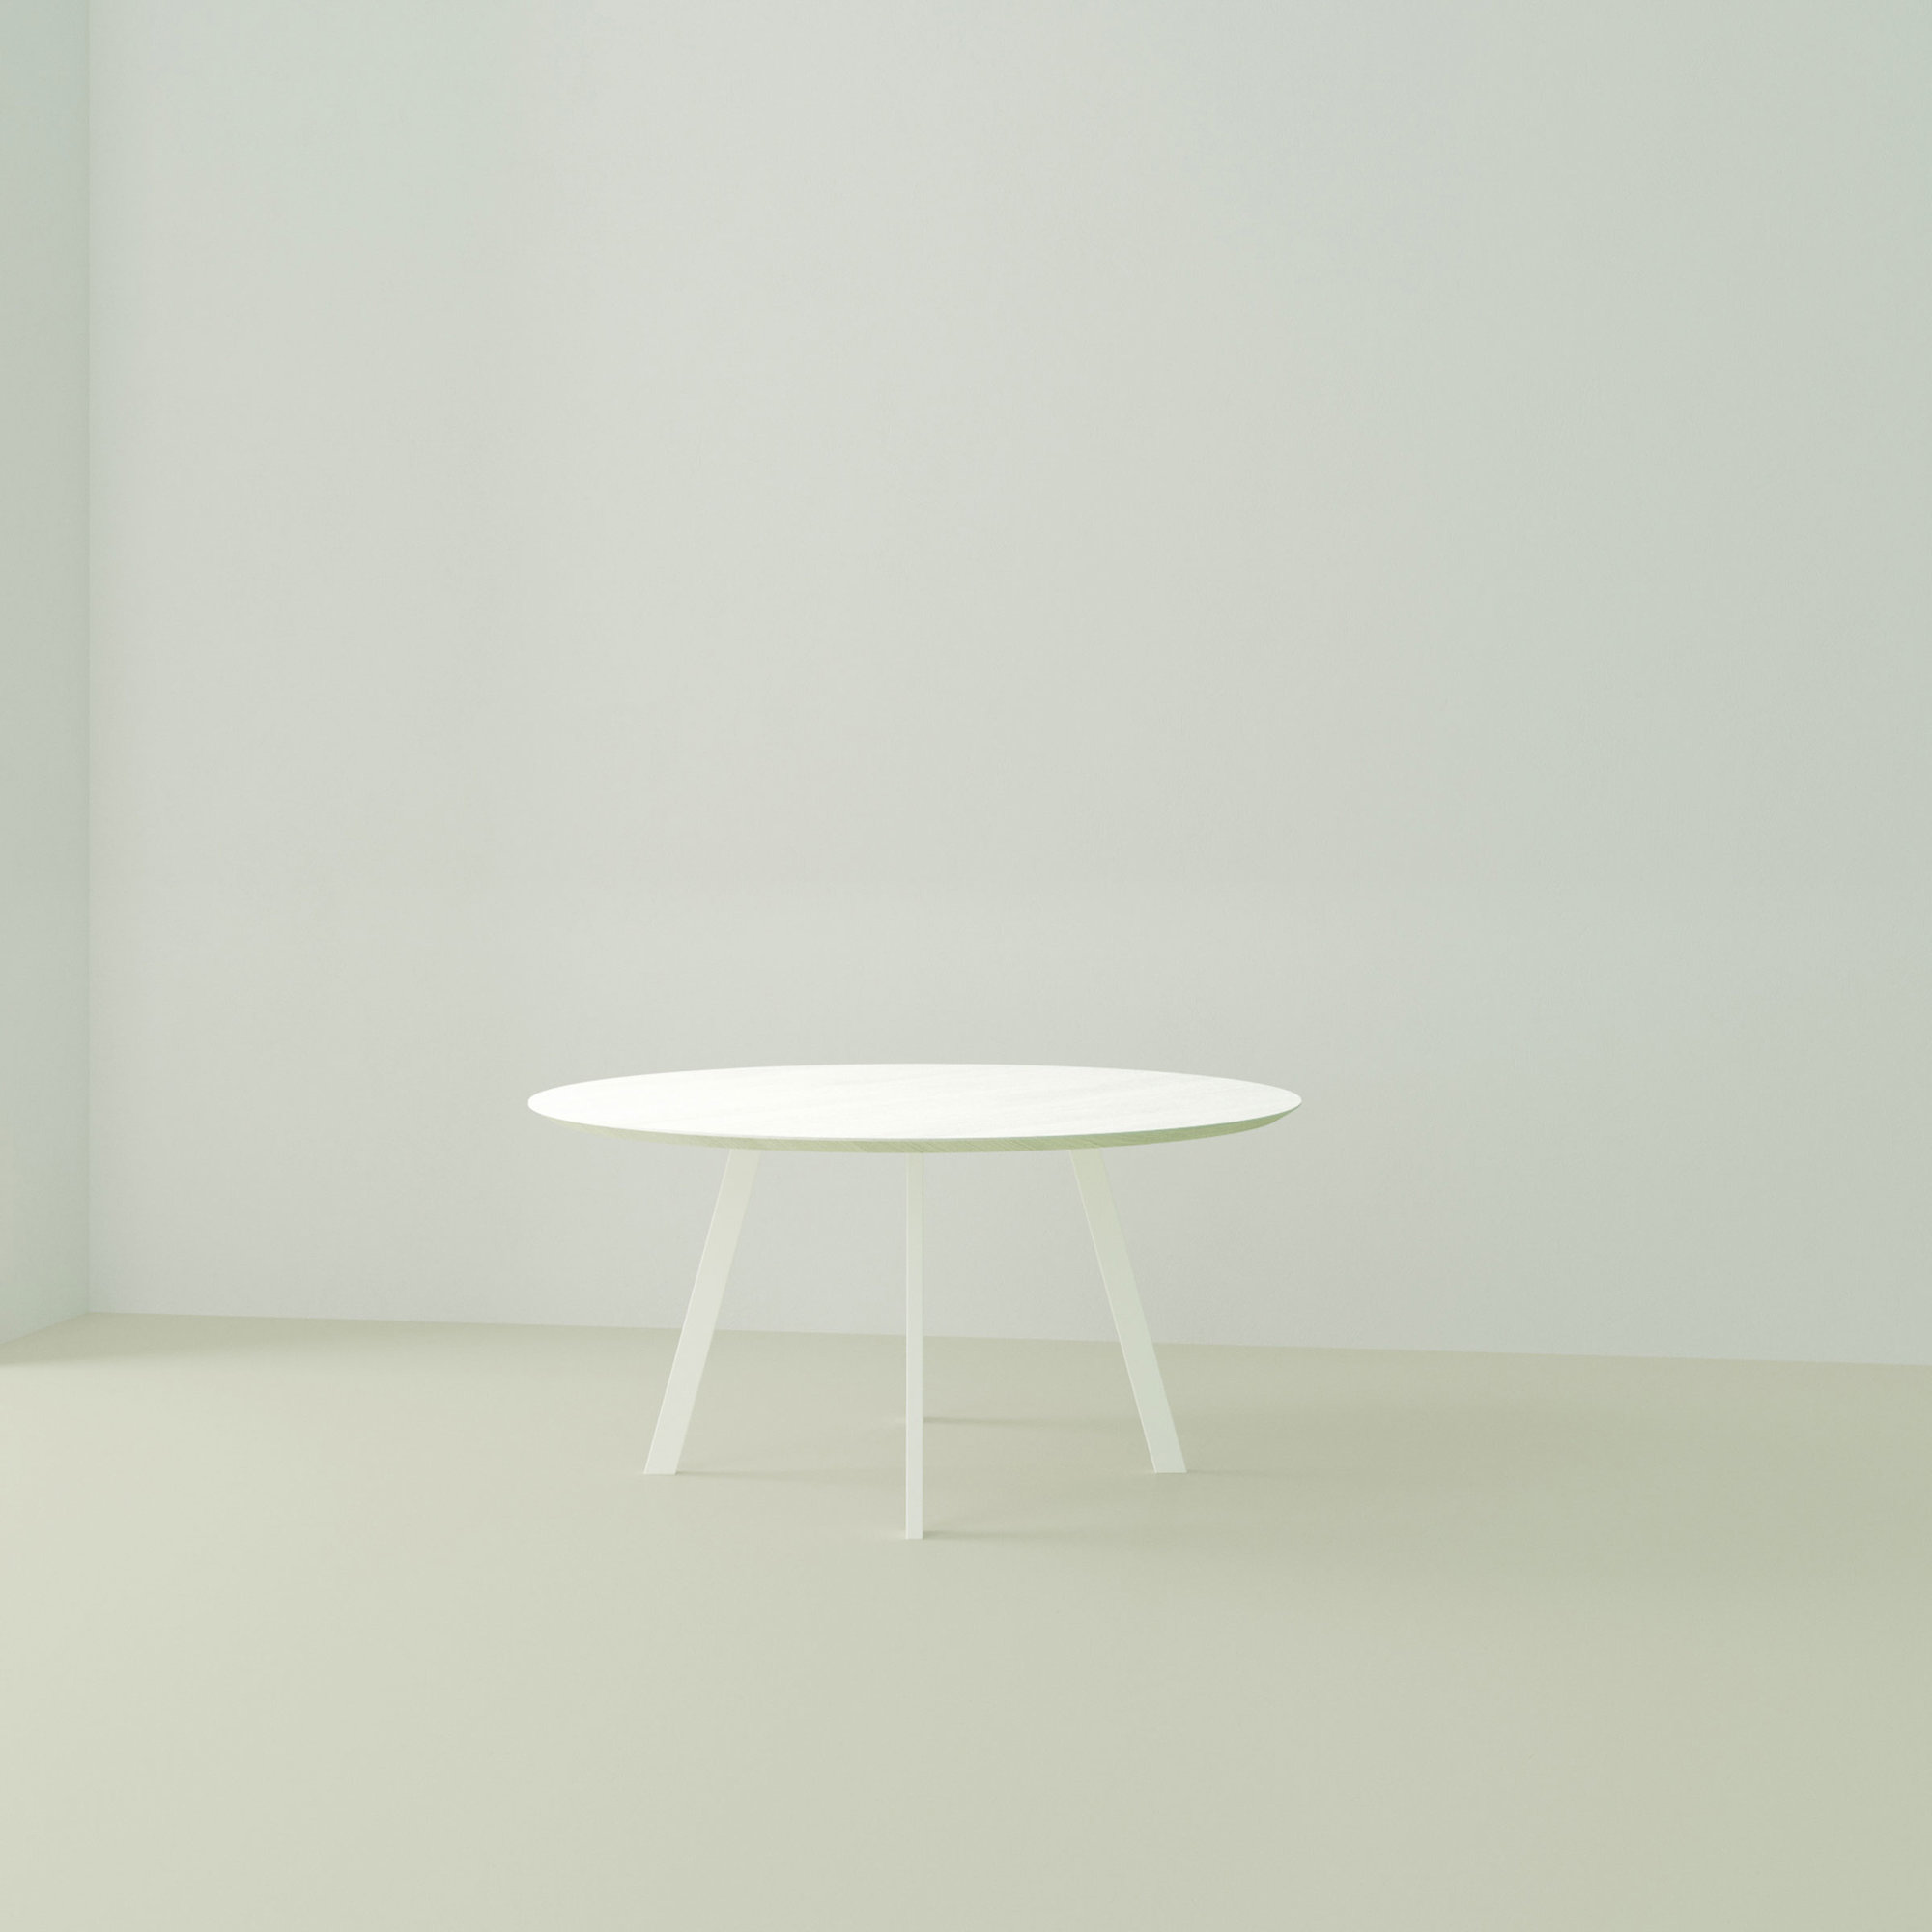 Ronde design tafel op maat | New Co Quadpod Steel white powdercoating | Oak white lacquer | Studio HENK | Listing_image